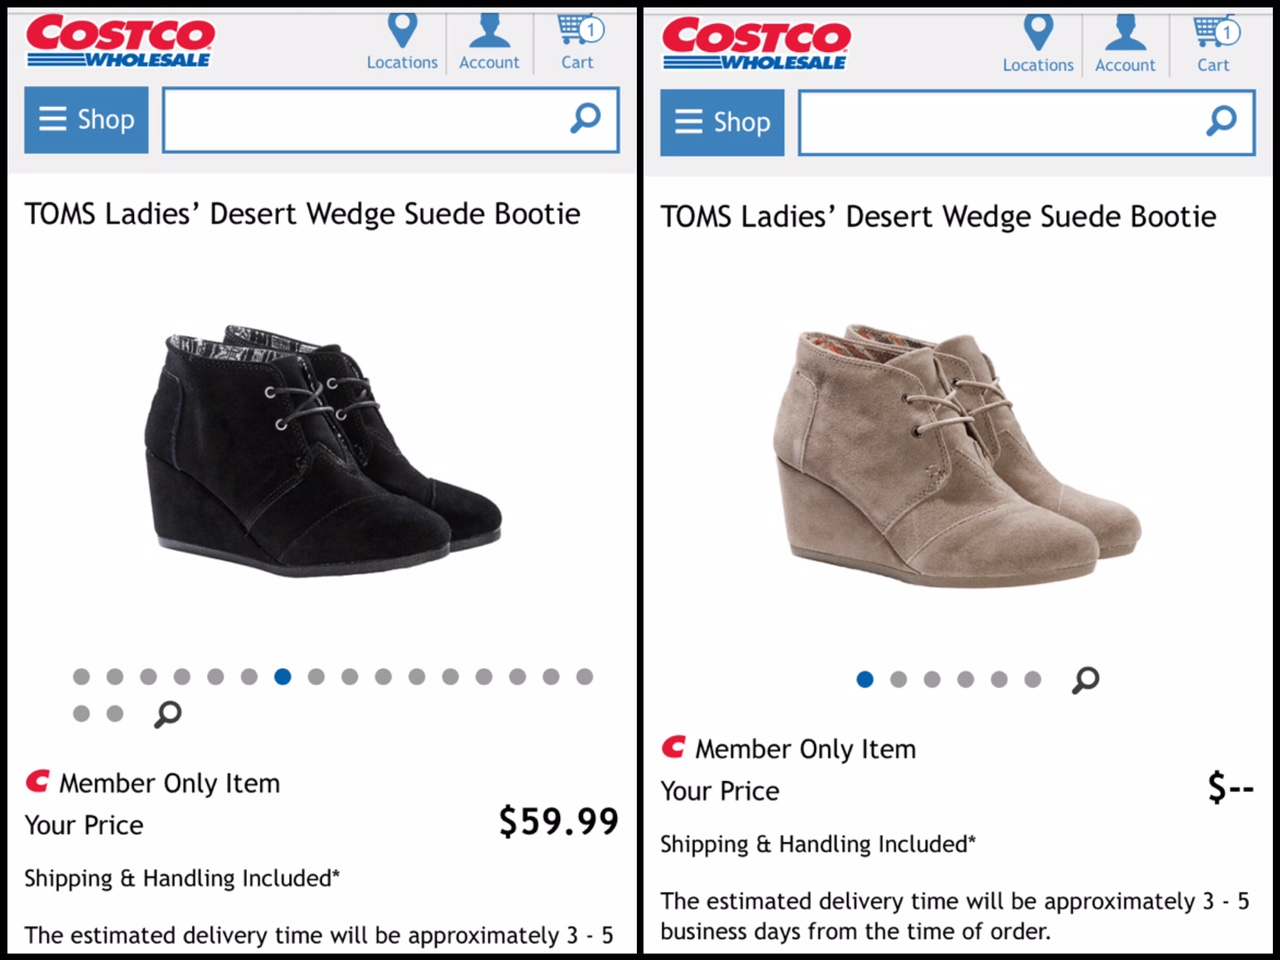 TOMS Desert Wedge booties are just $59.99 for Costco members!